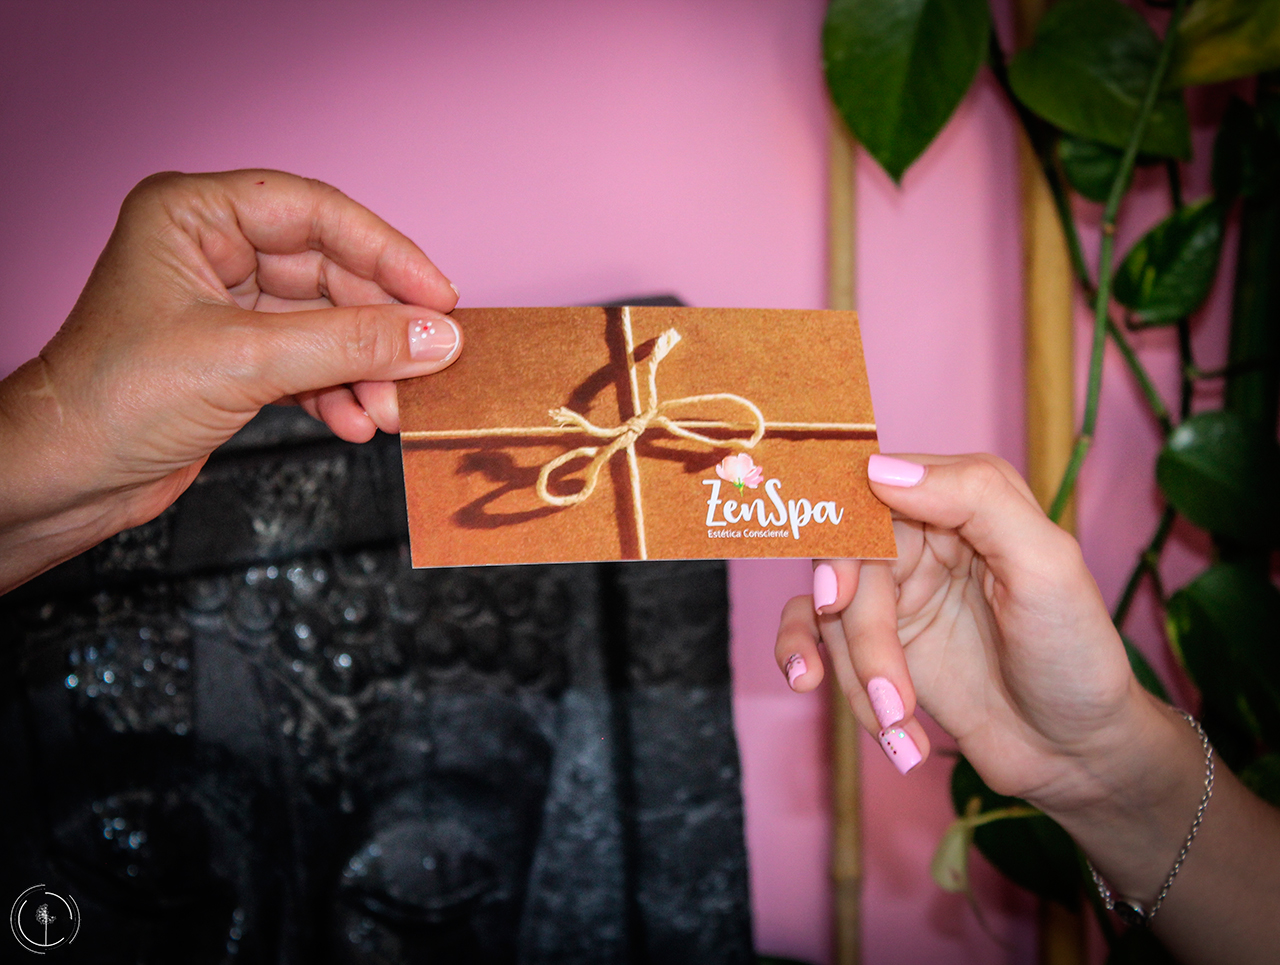 Cheque regalo Zen Spa Getafe